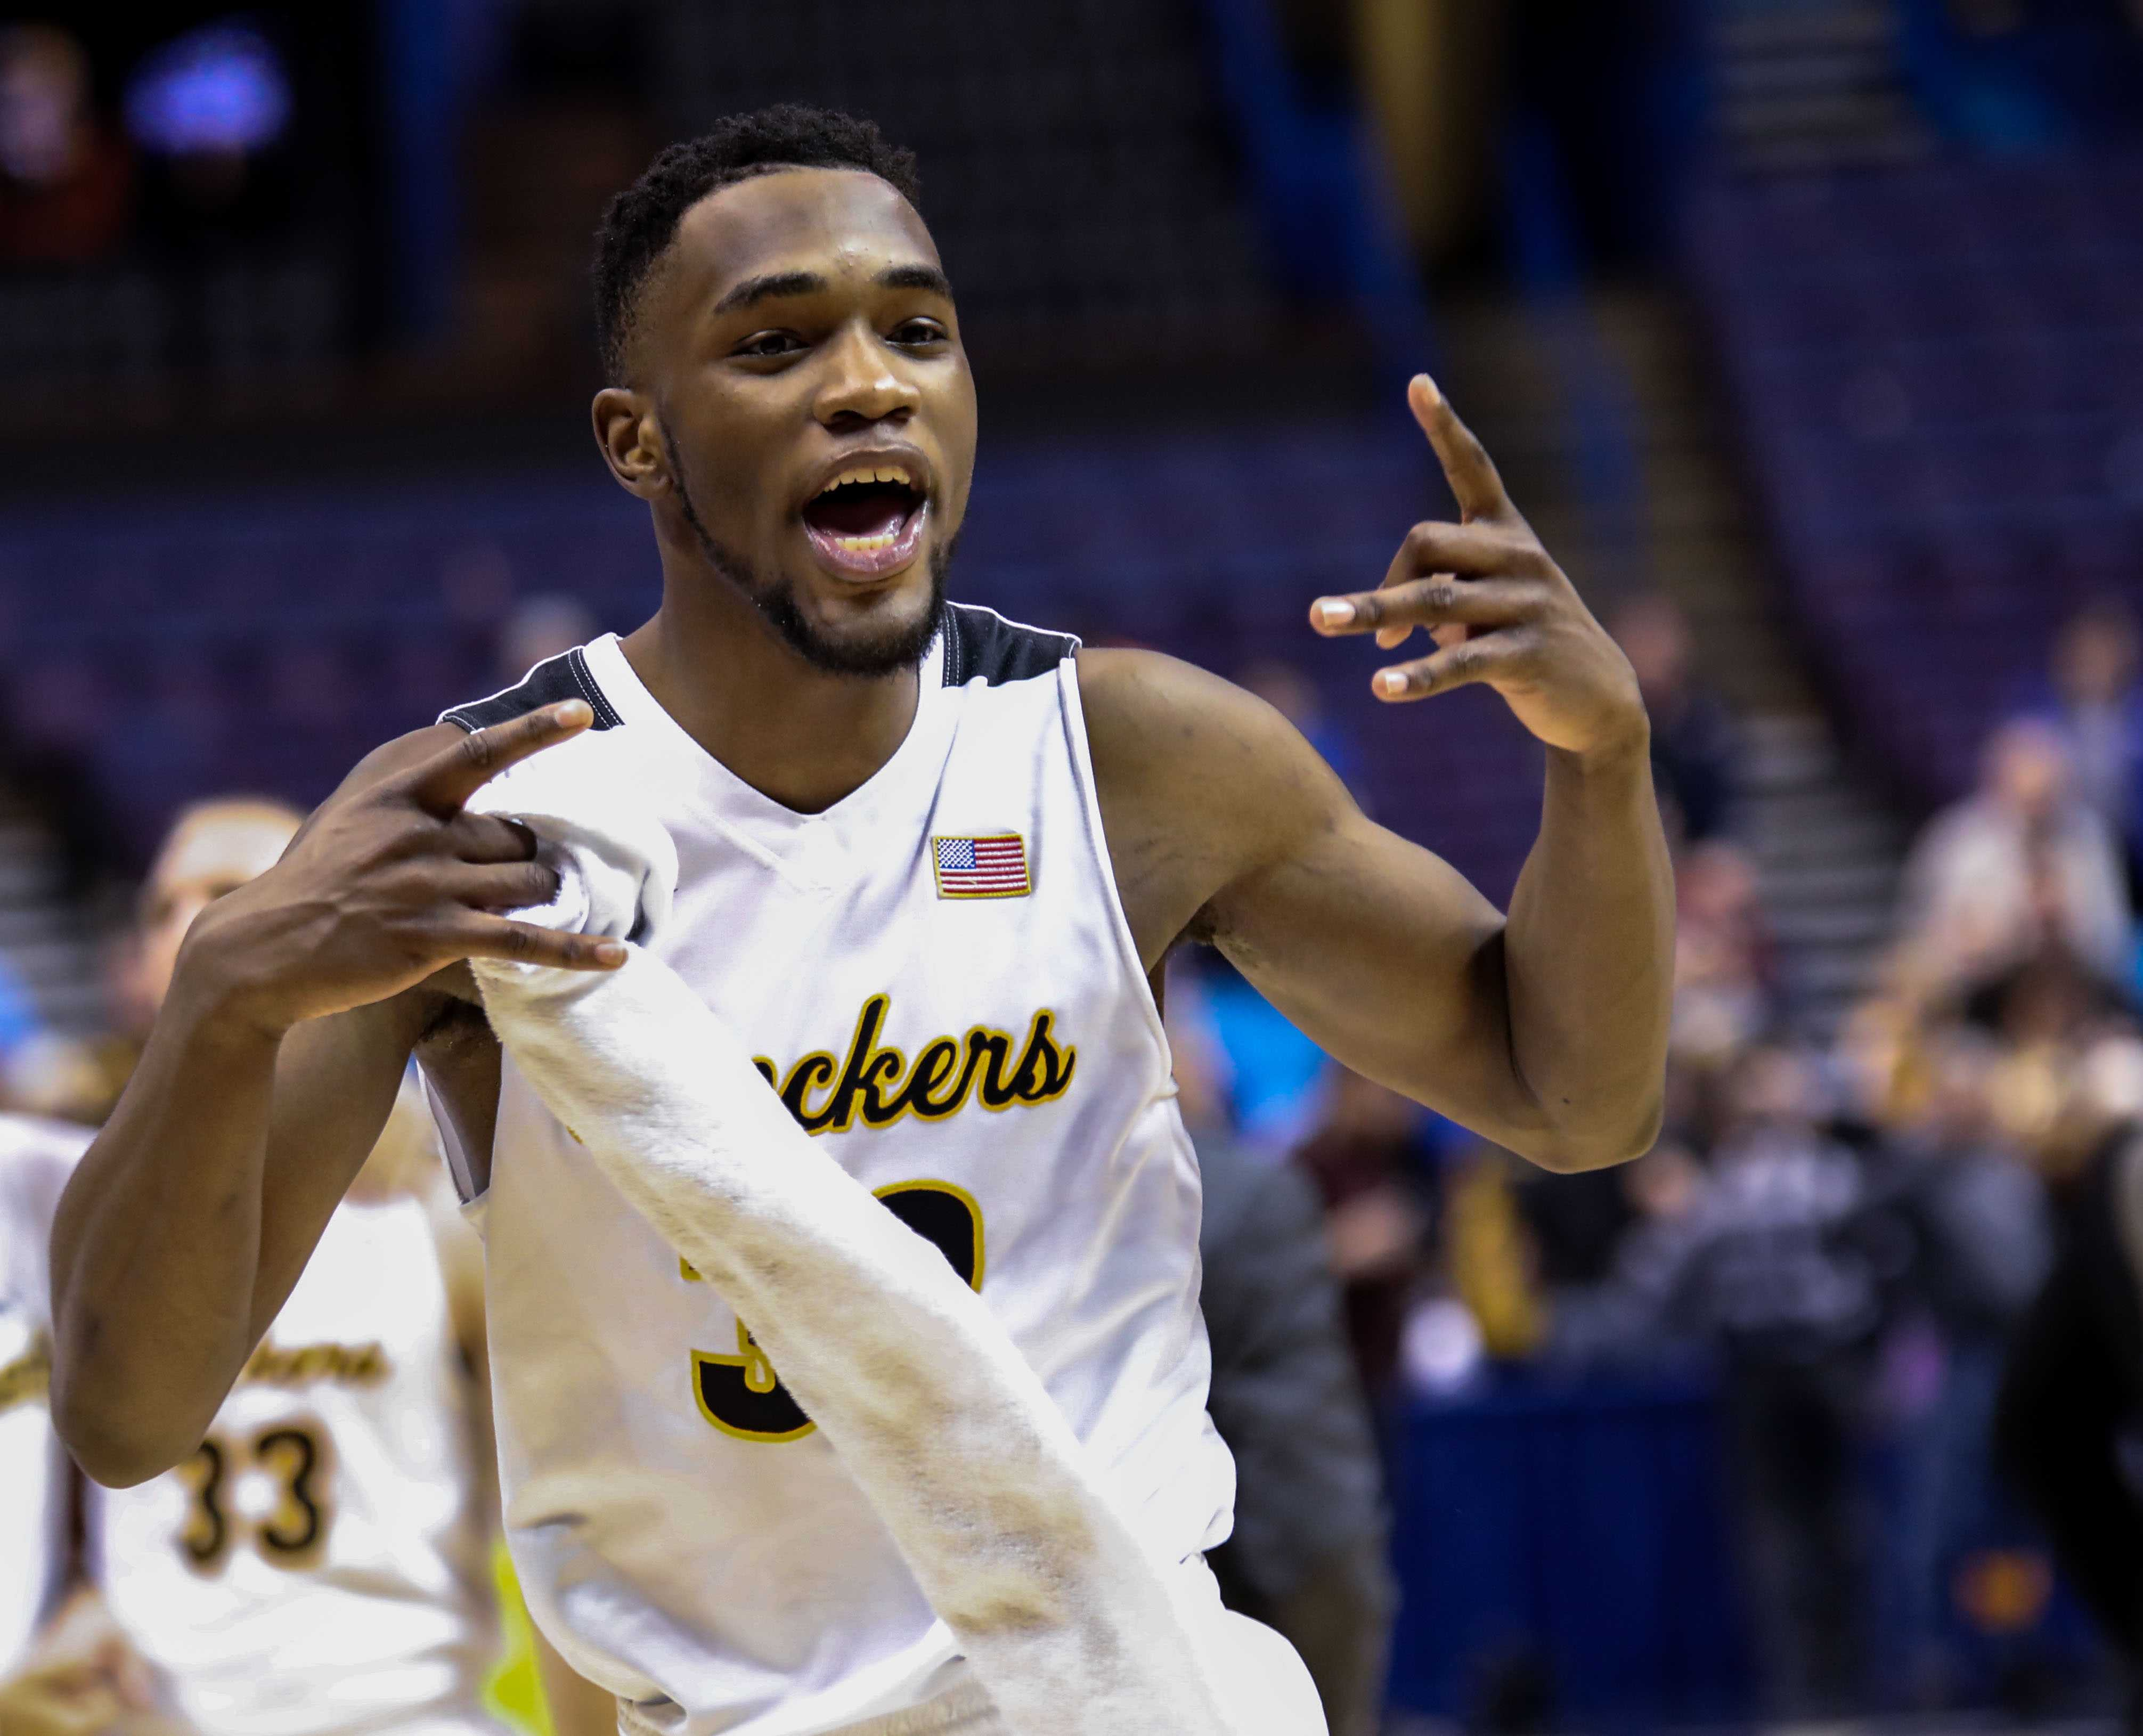 Wichita State's Markis McDuffie (32) celebrates the Shockers' victory.